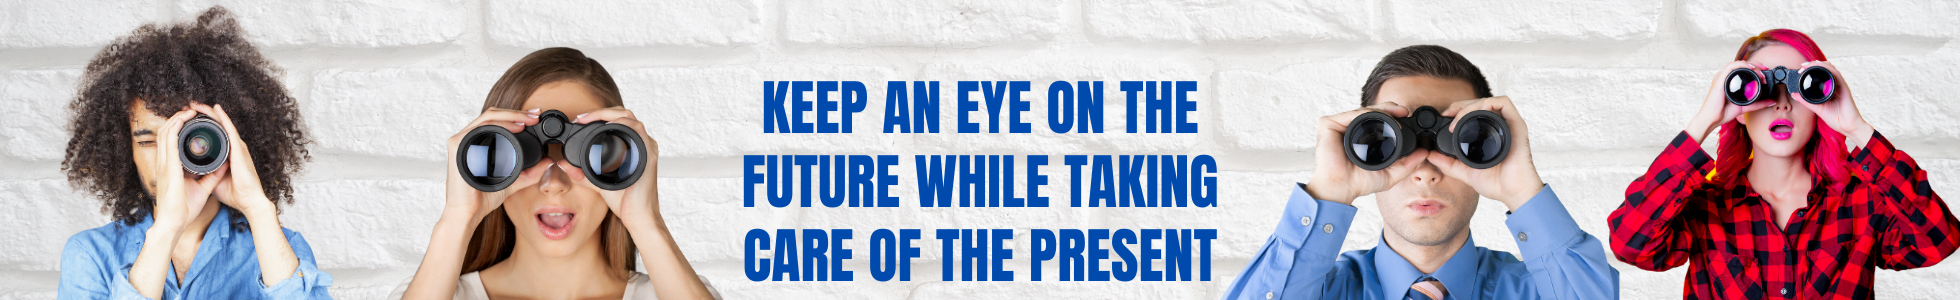 Keep an eye on the future while taking care of the present